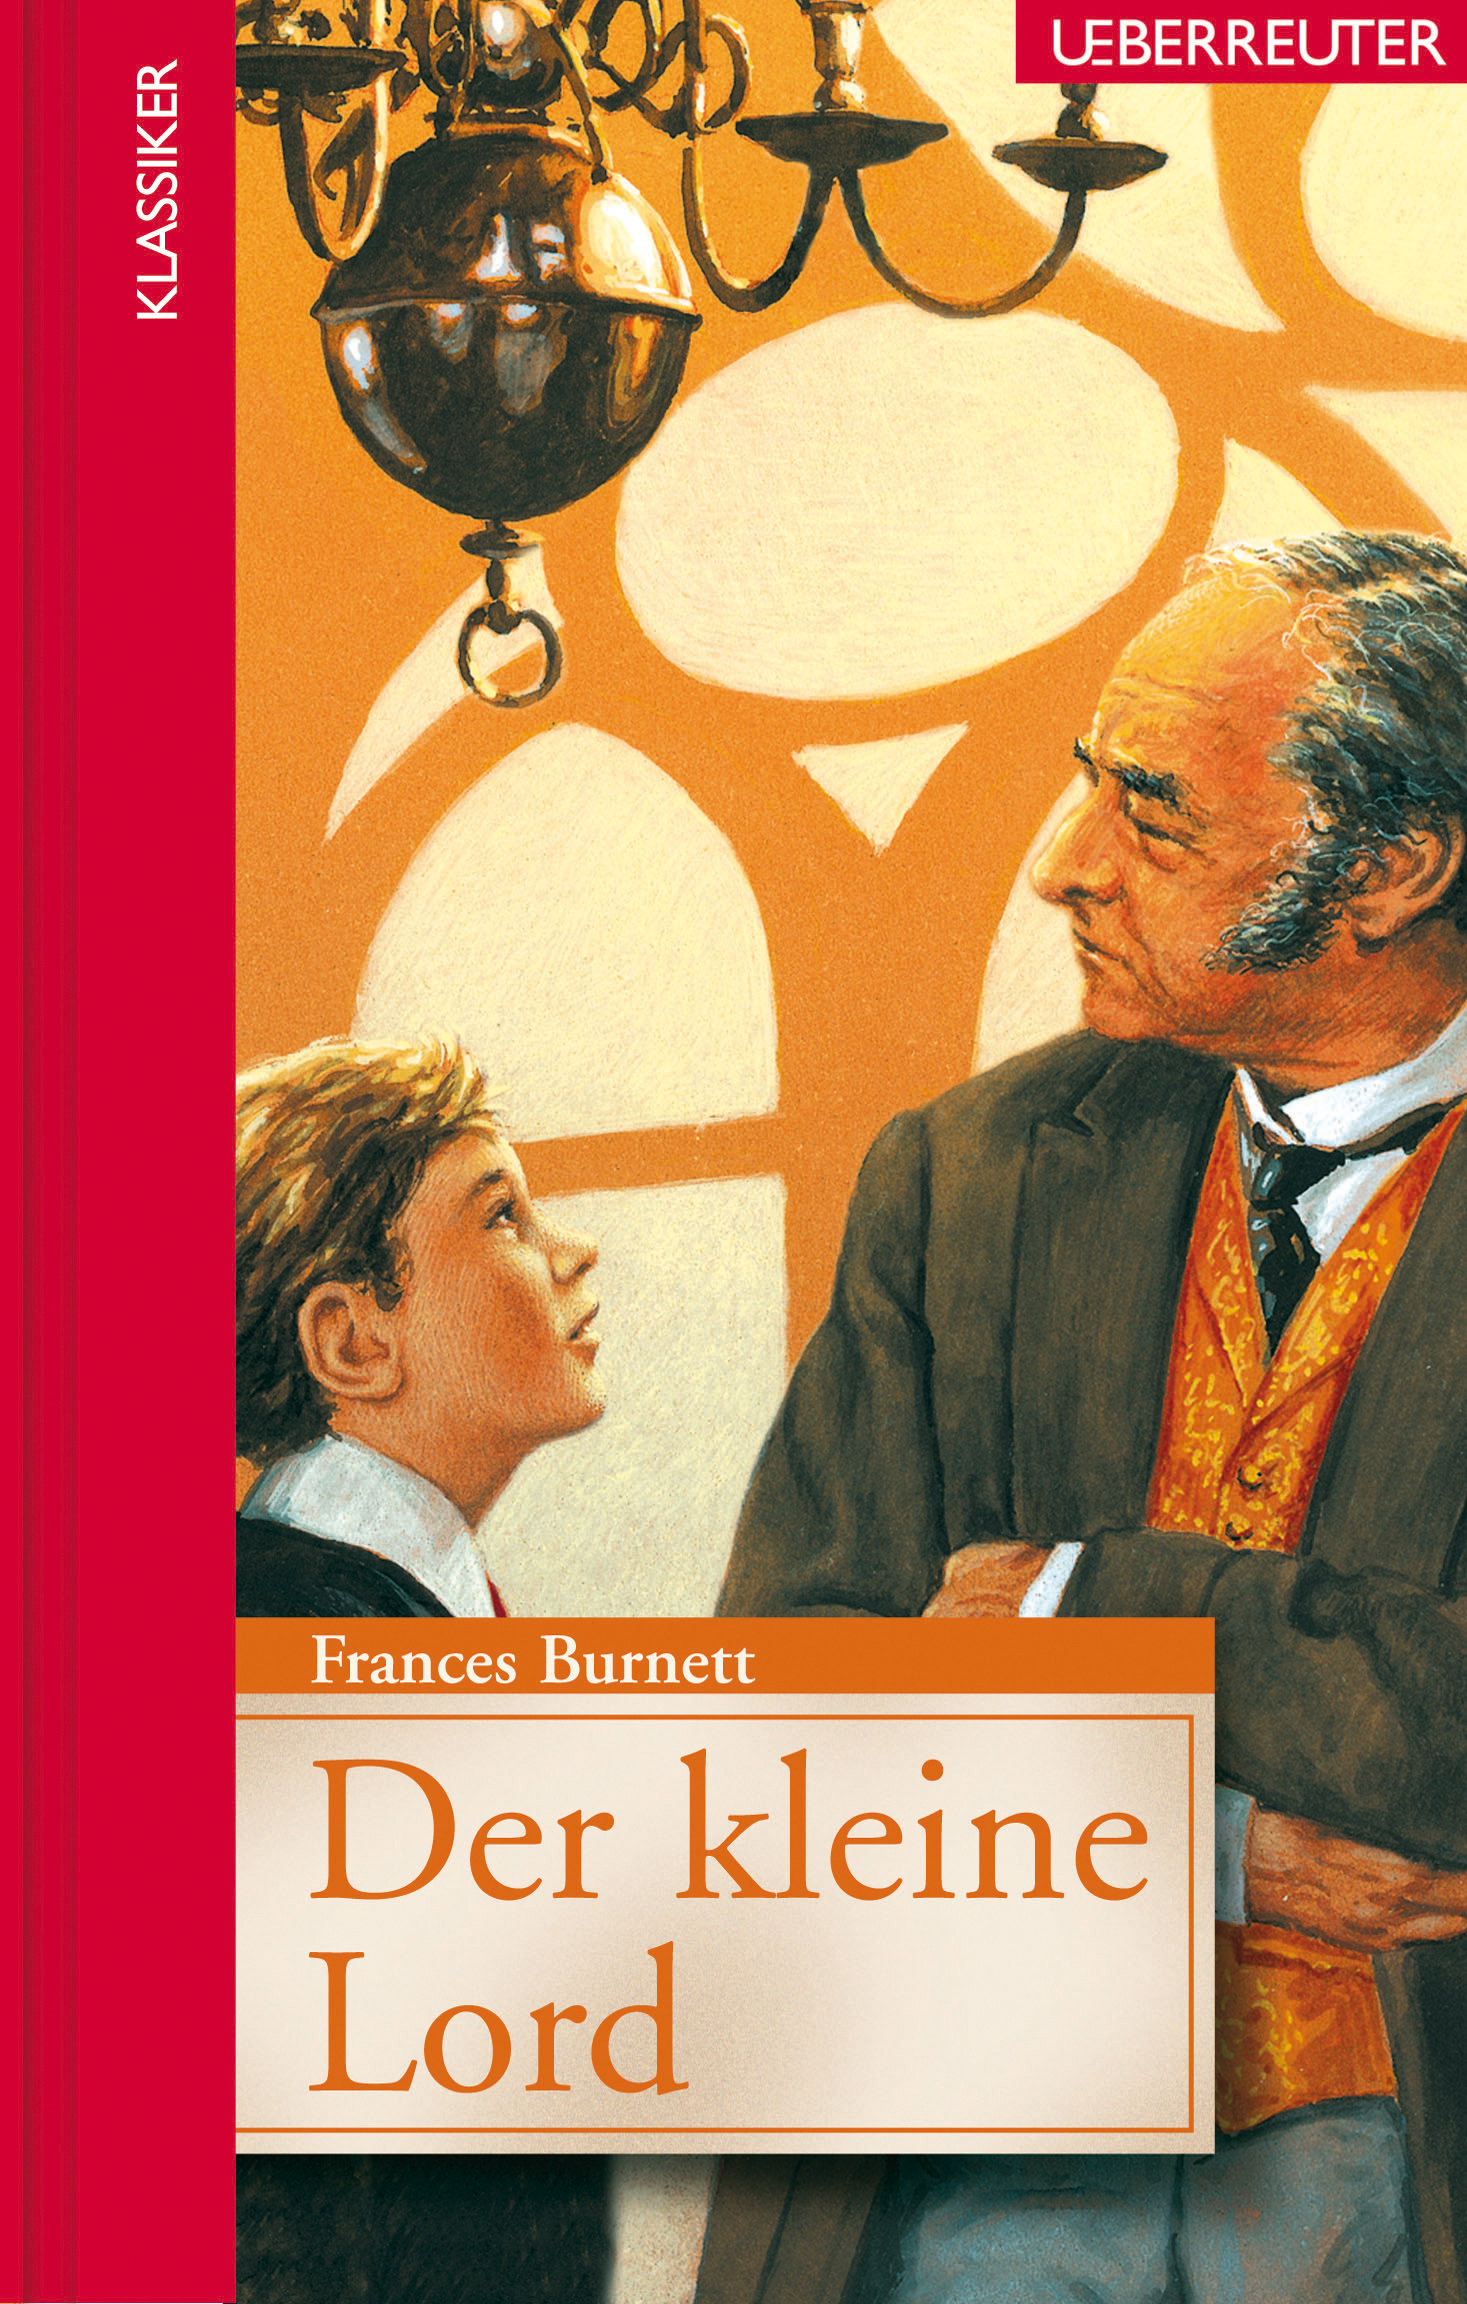 Der kleine Lord: Frances Burnett